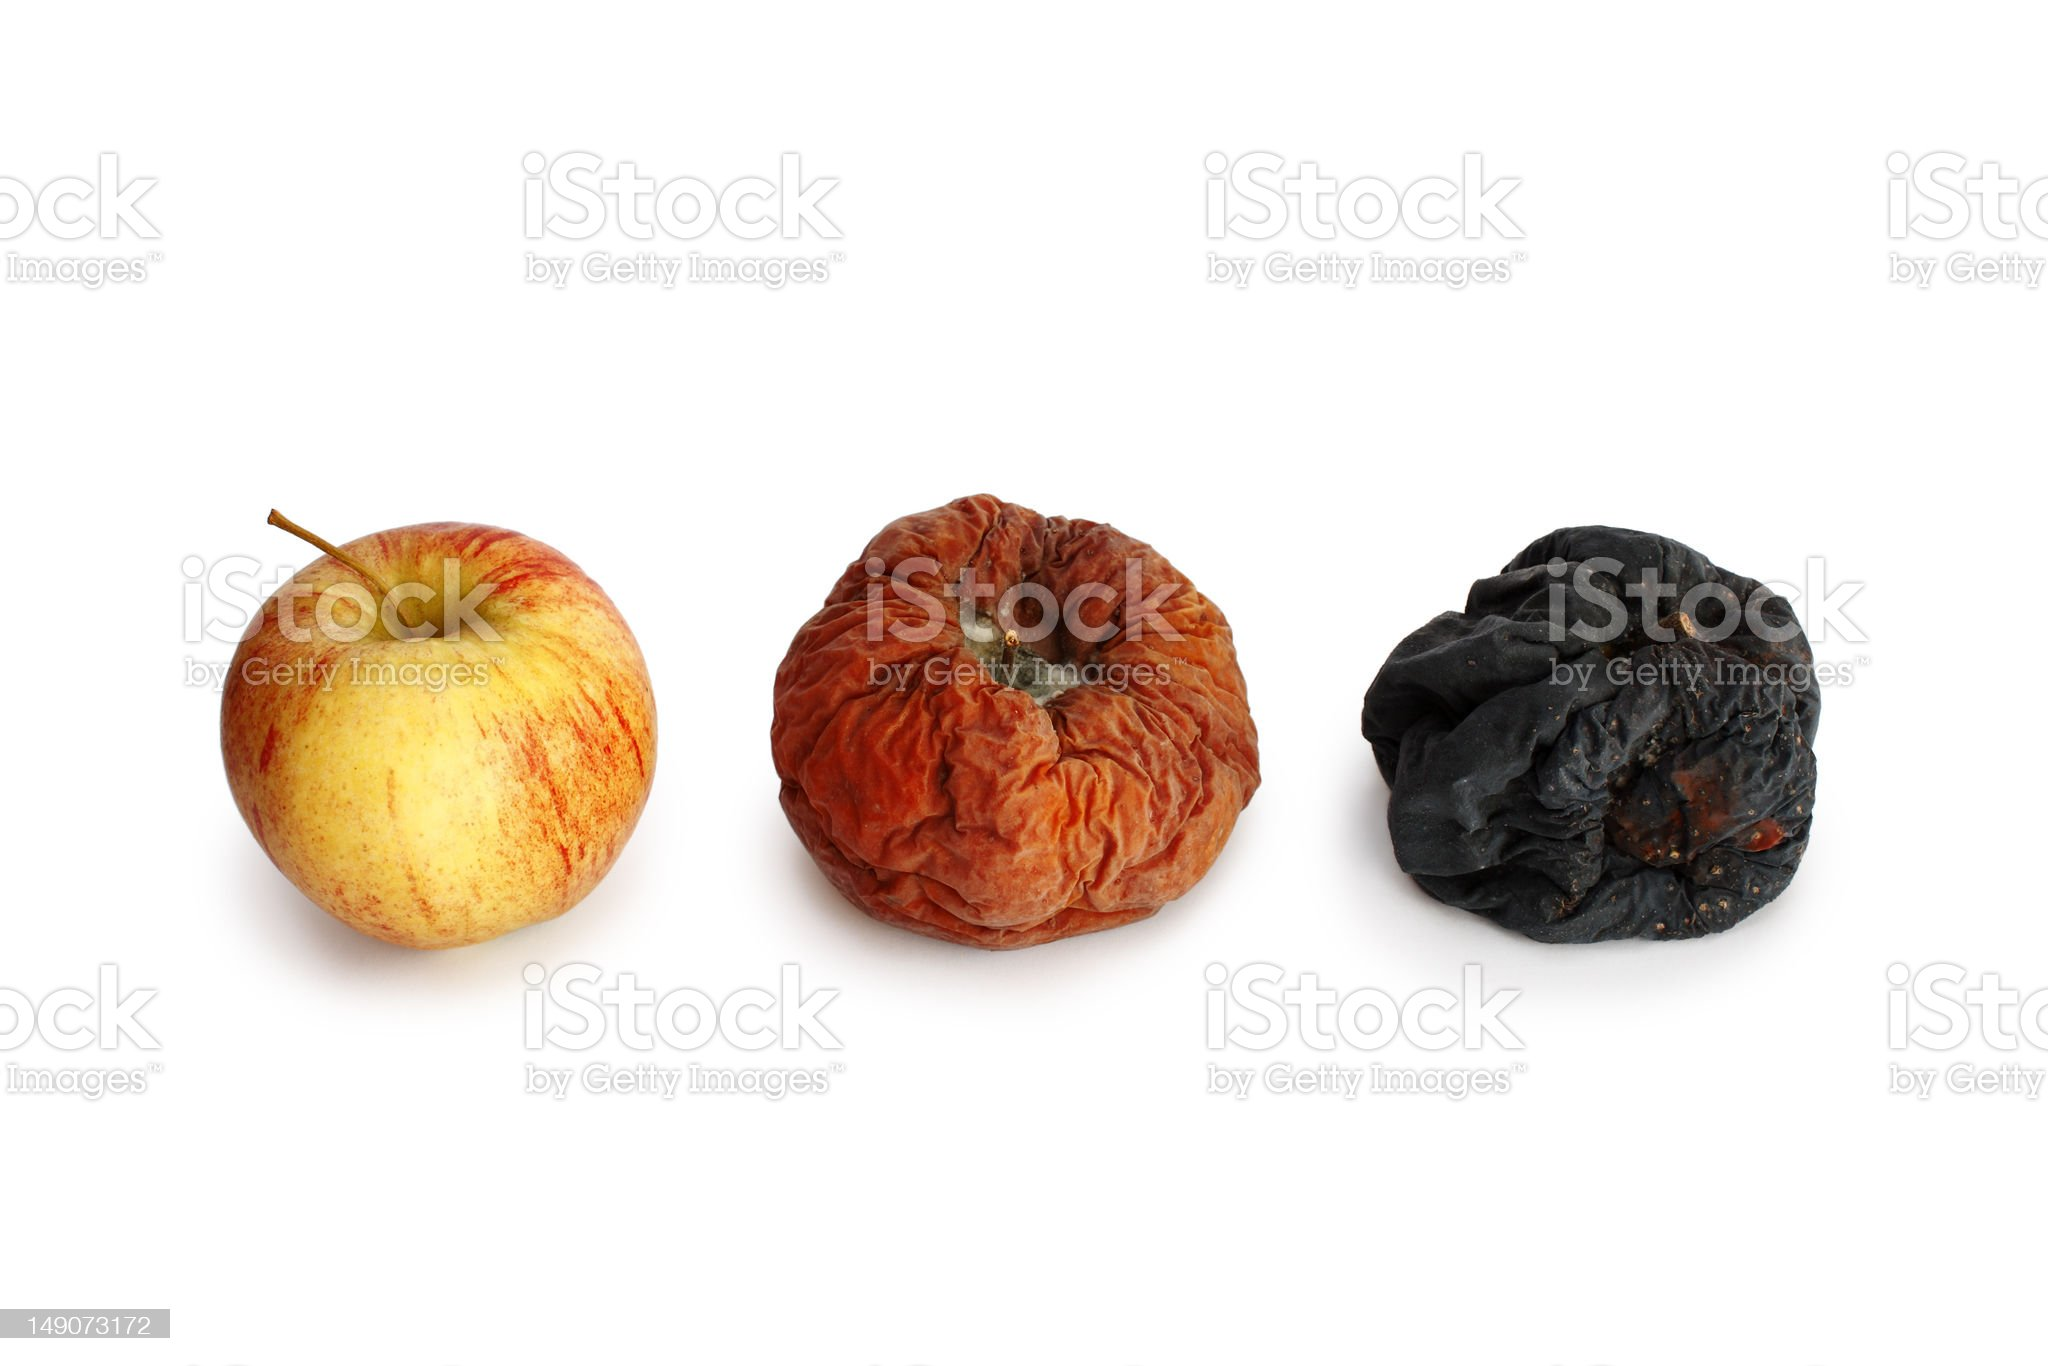 apples in different stages of decay, isolated royalty-free stock photo